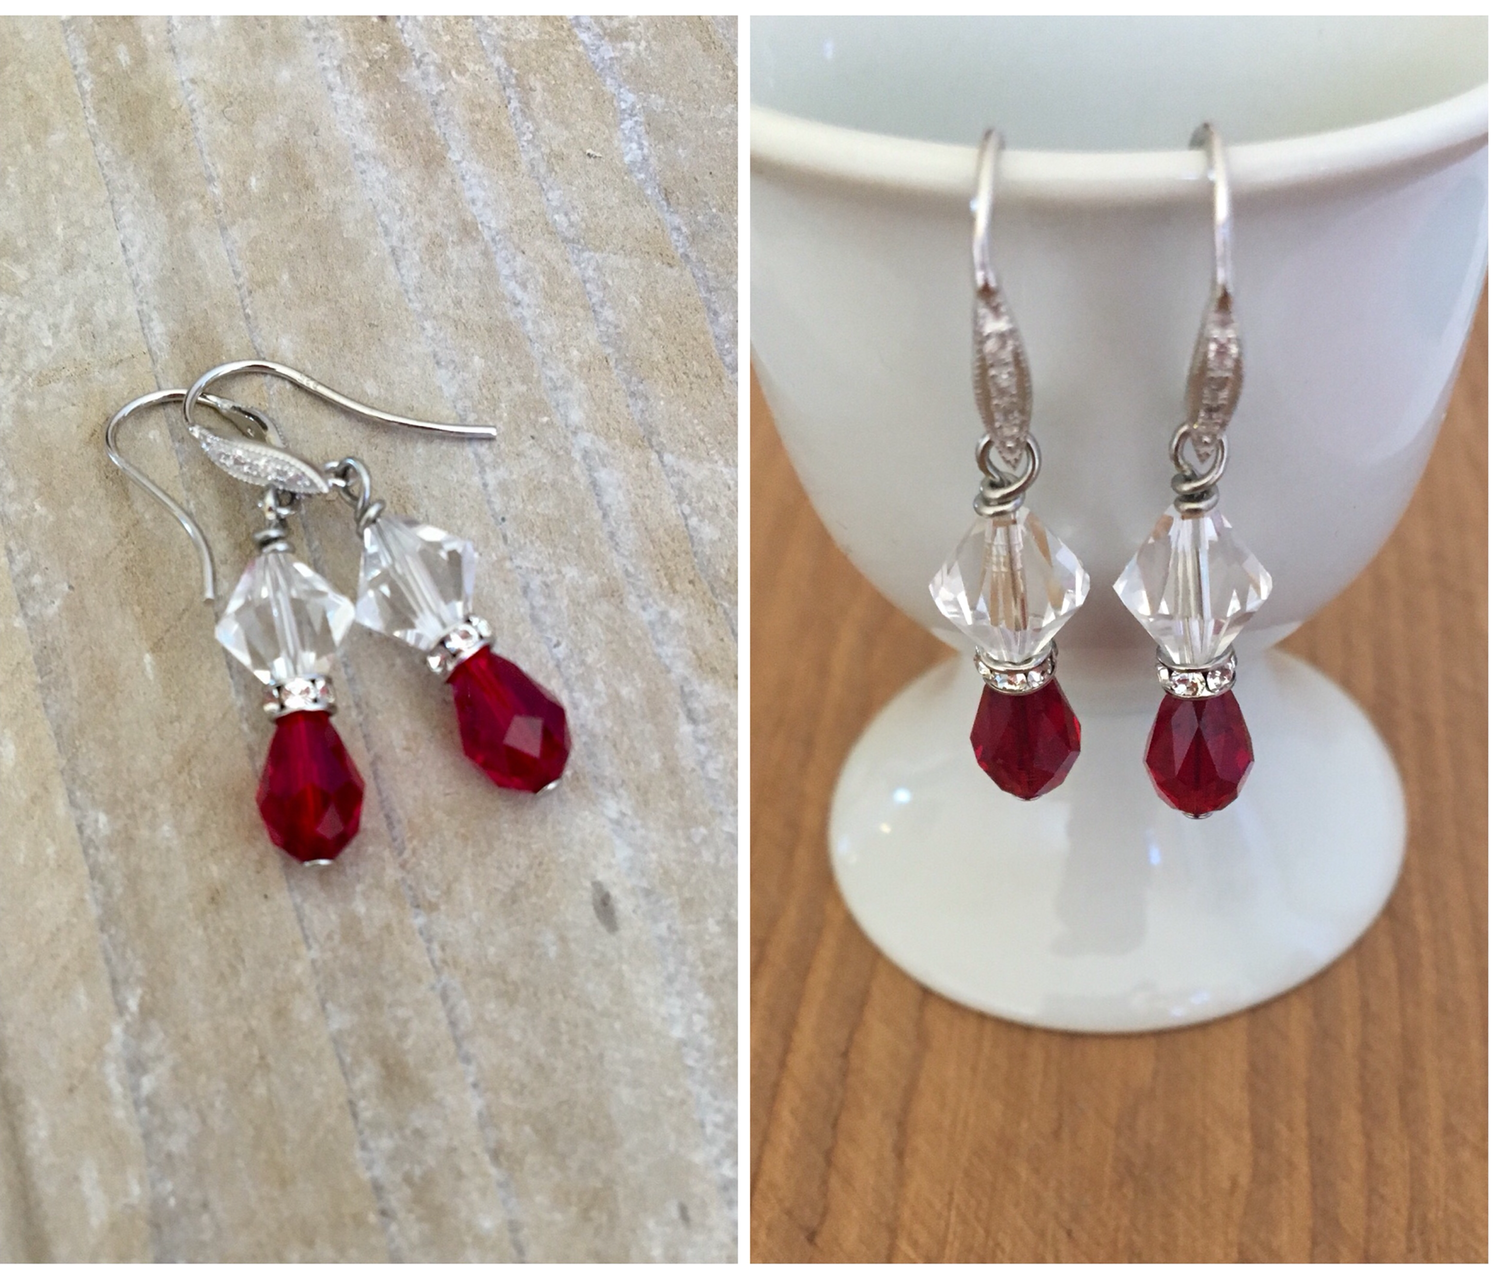 Special order Christmas earrings for Christine Anderson